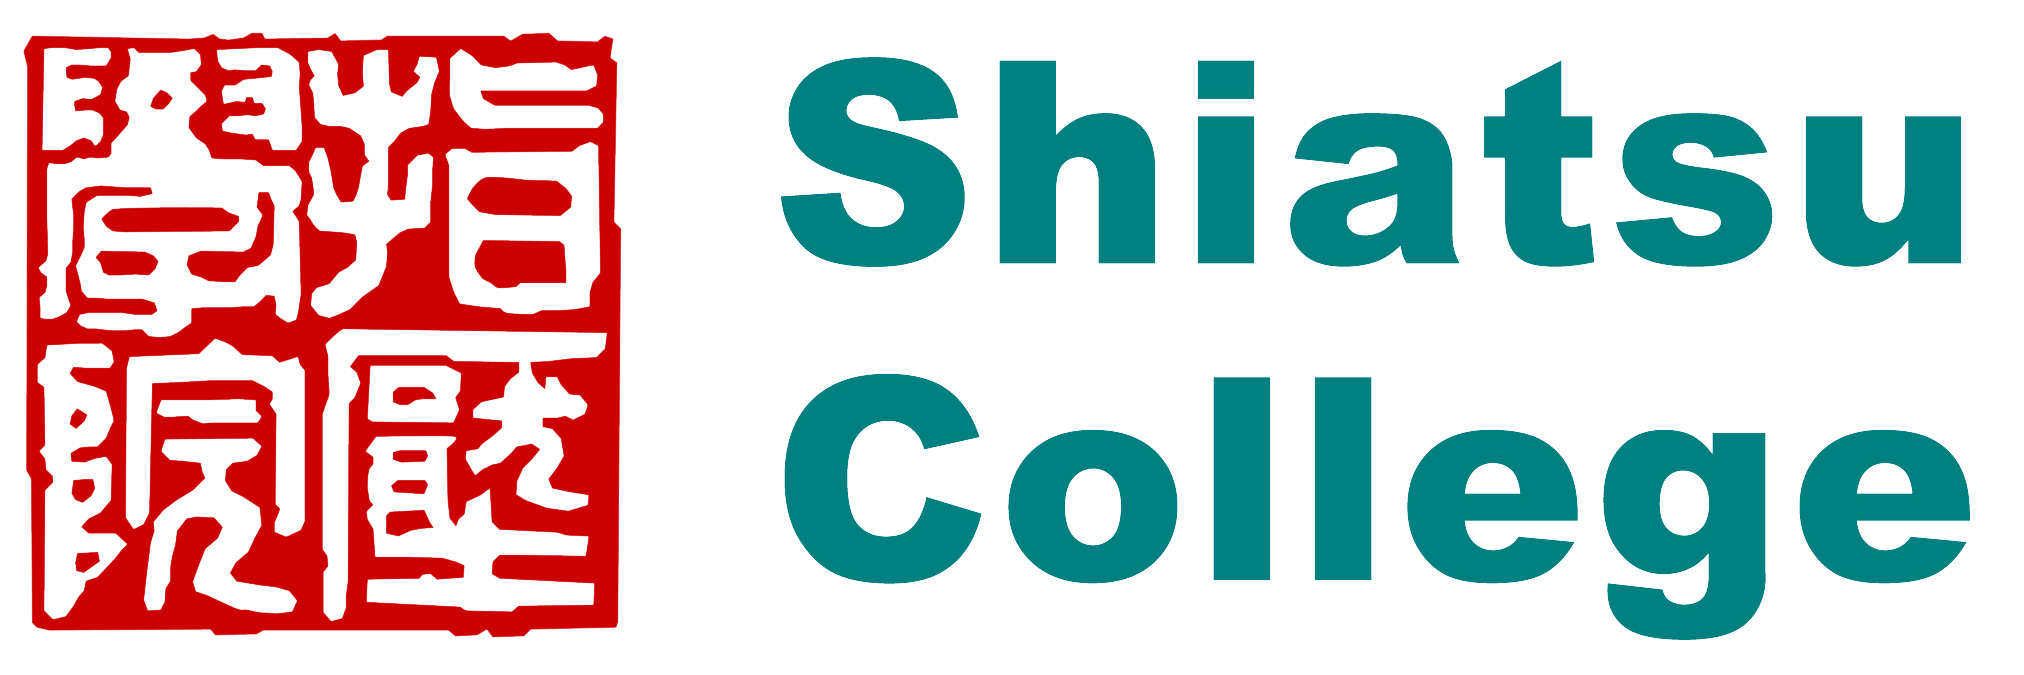 The Shiatsu College